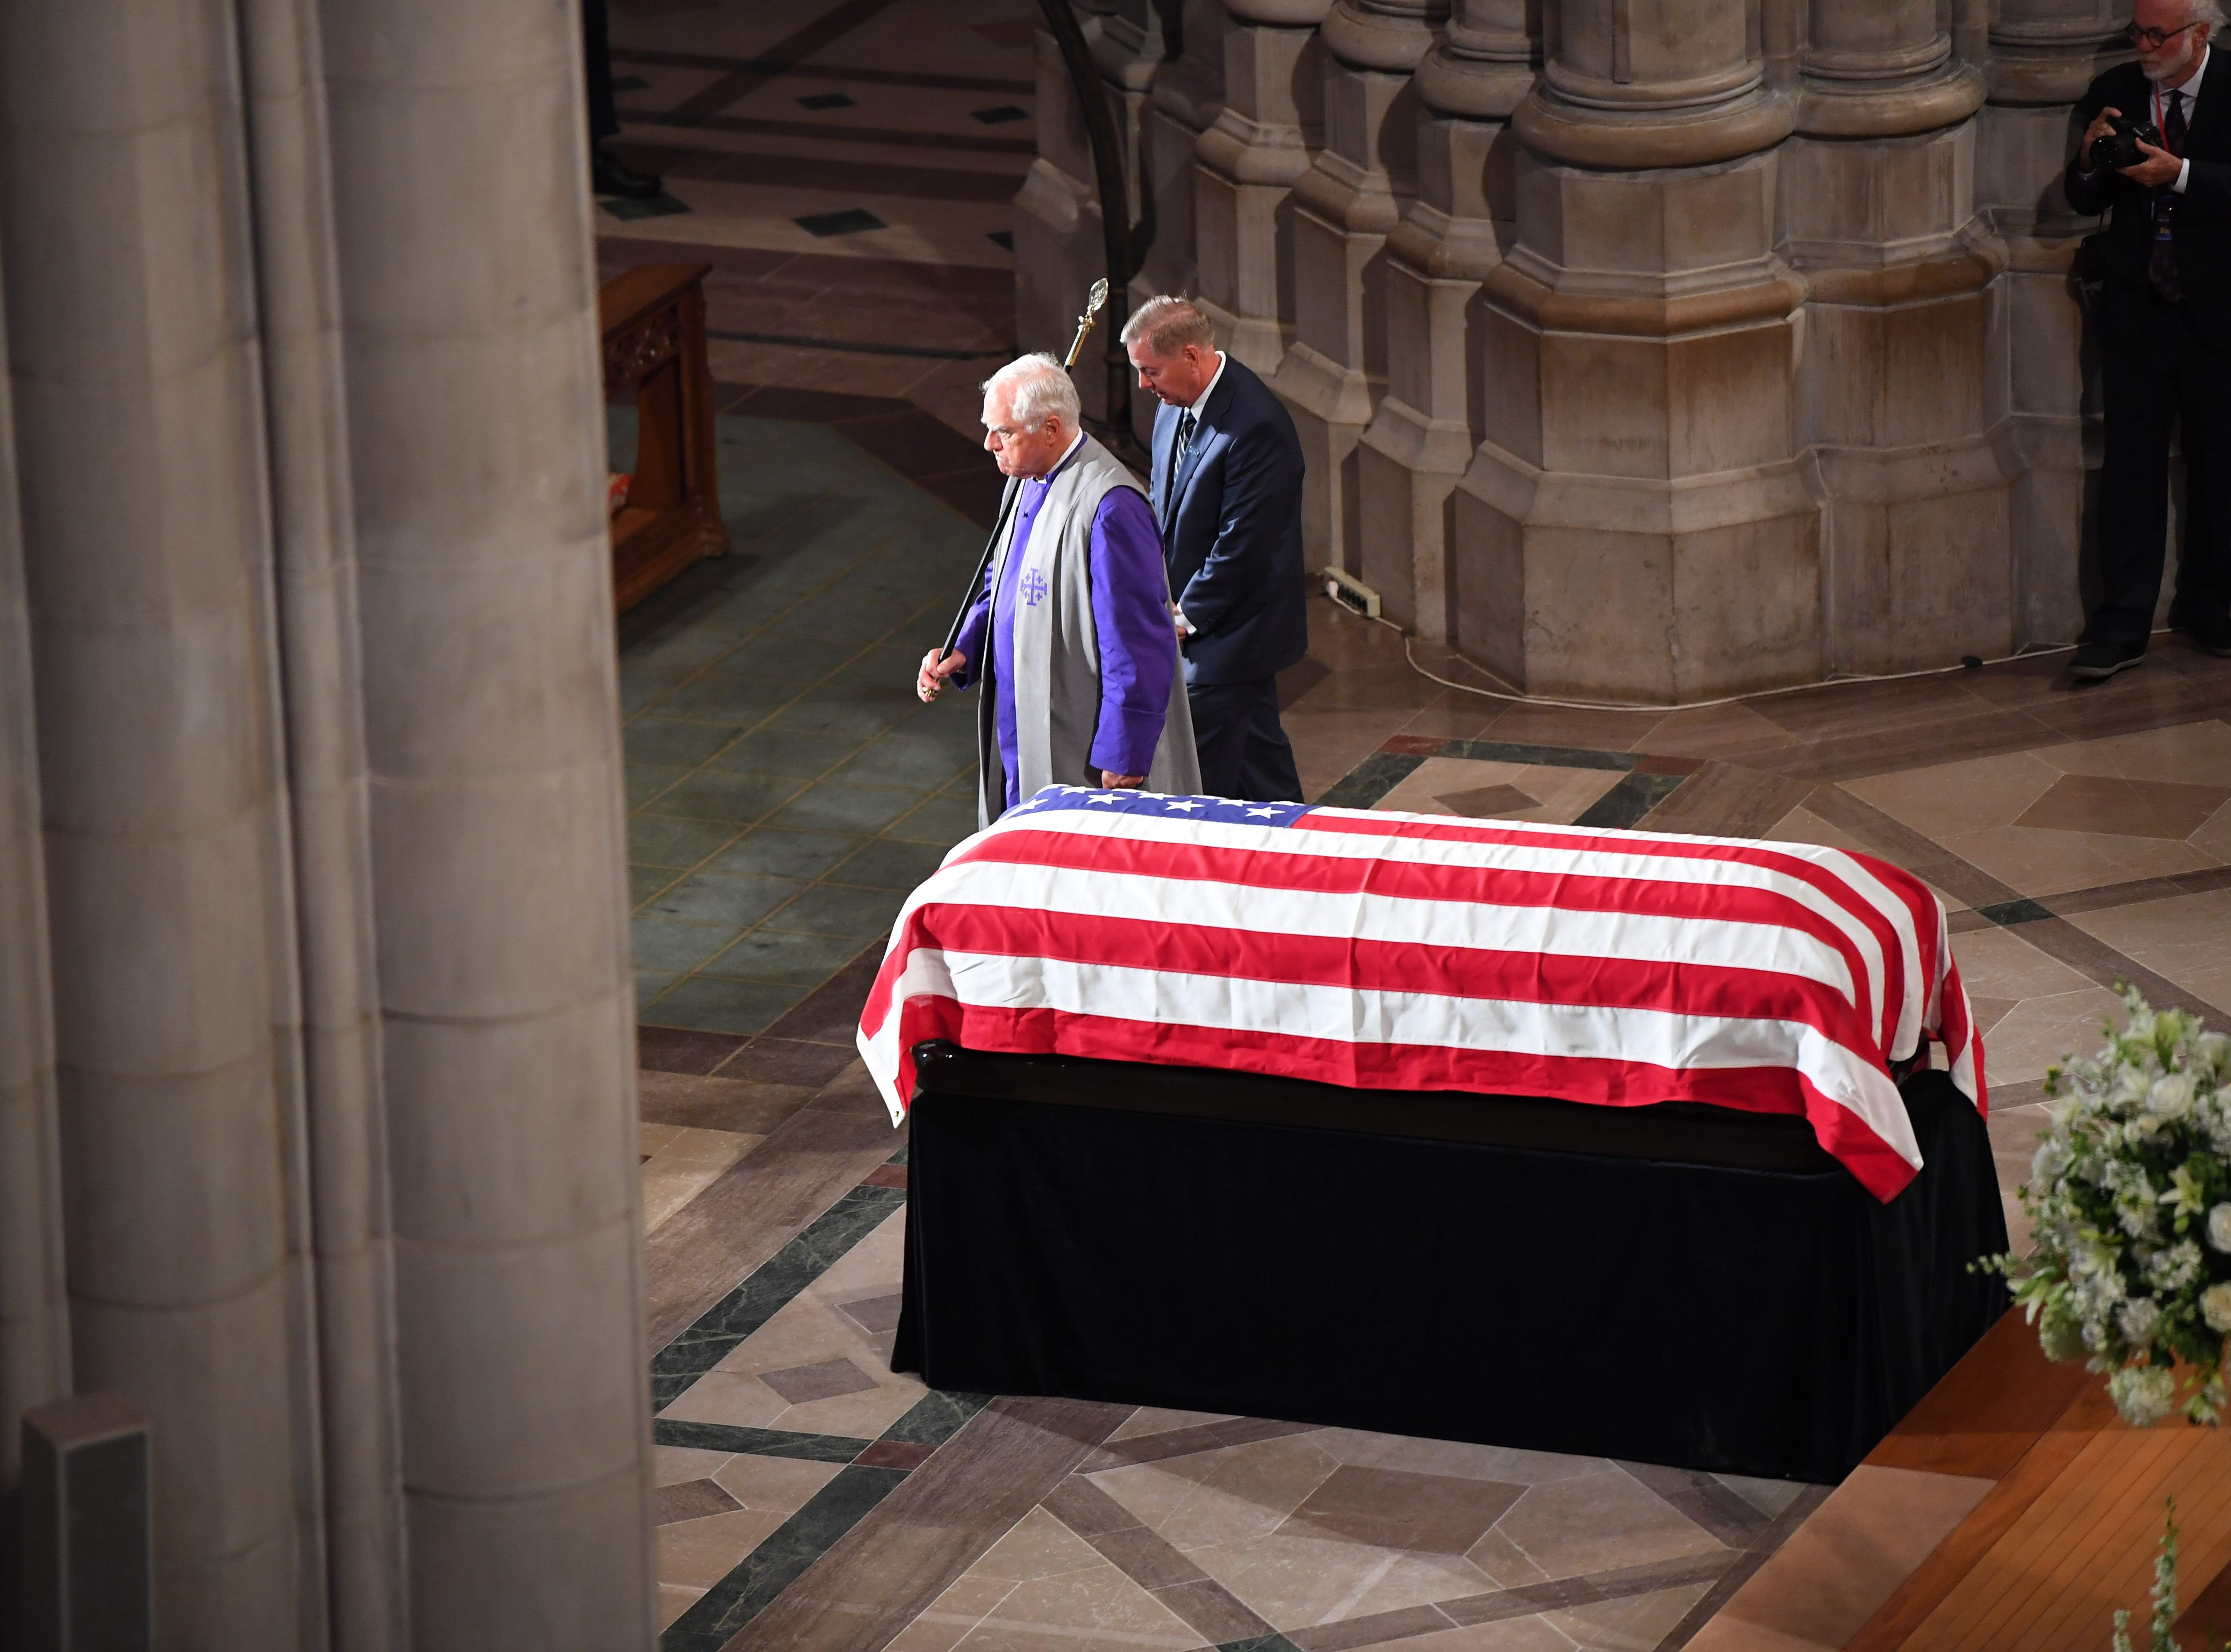 Lindsey Graham returns, Saturday, to his seat after reading the scripture at the memorial service for John McCain.